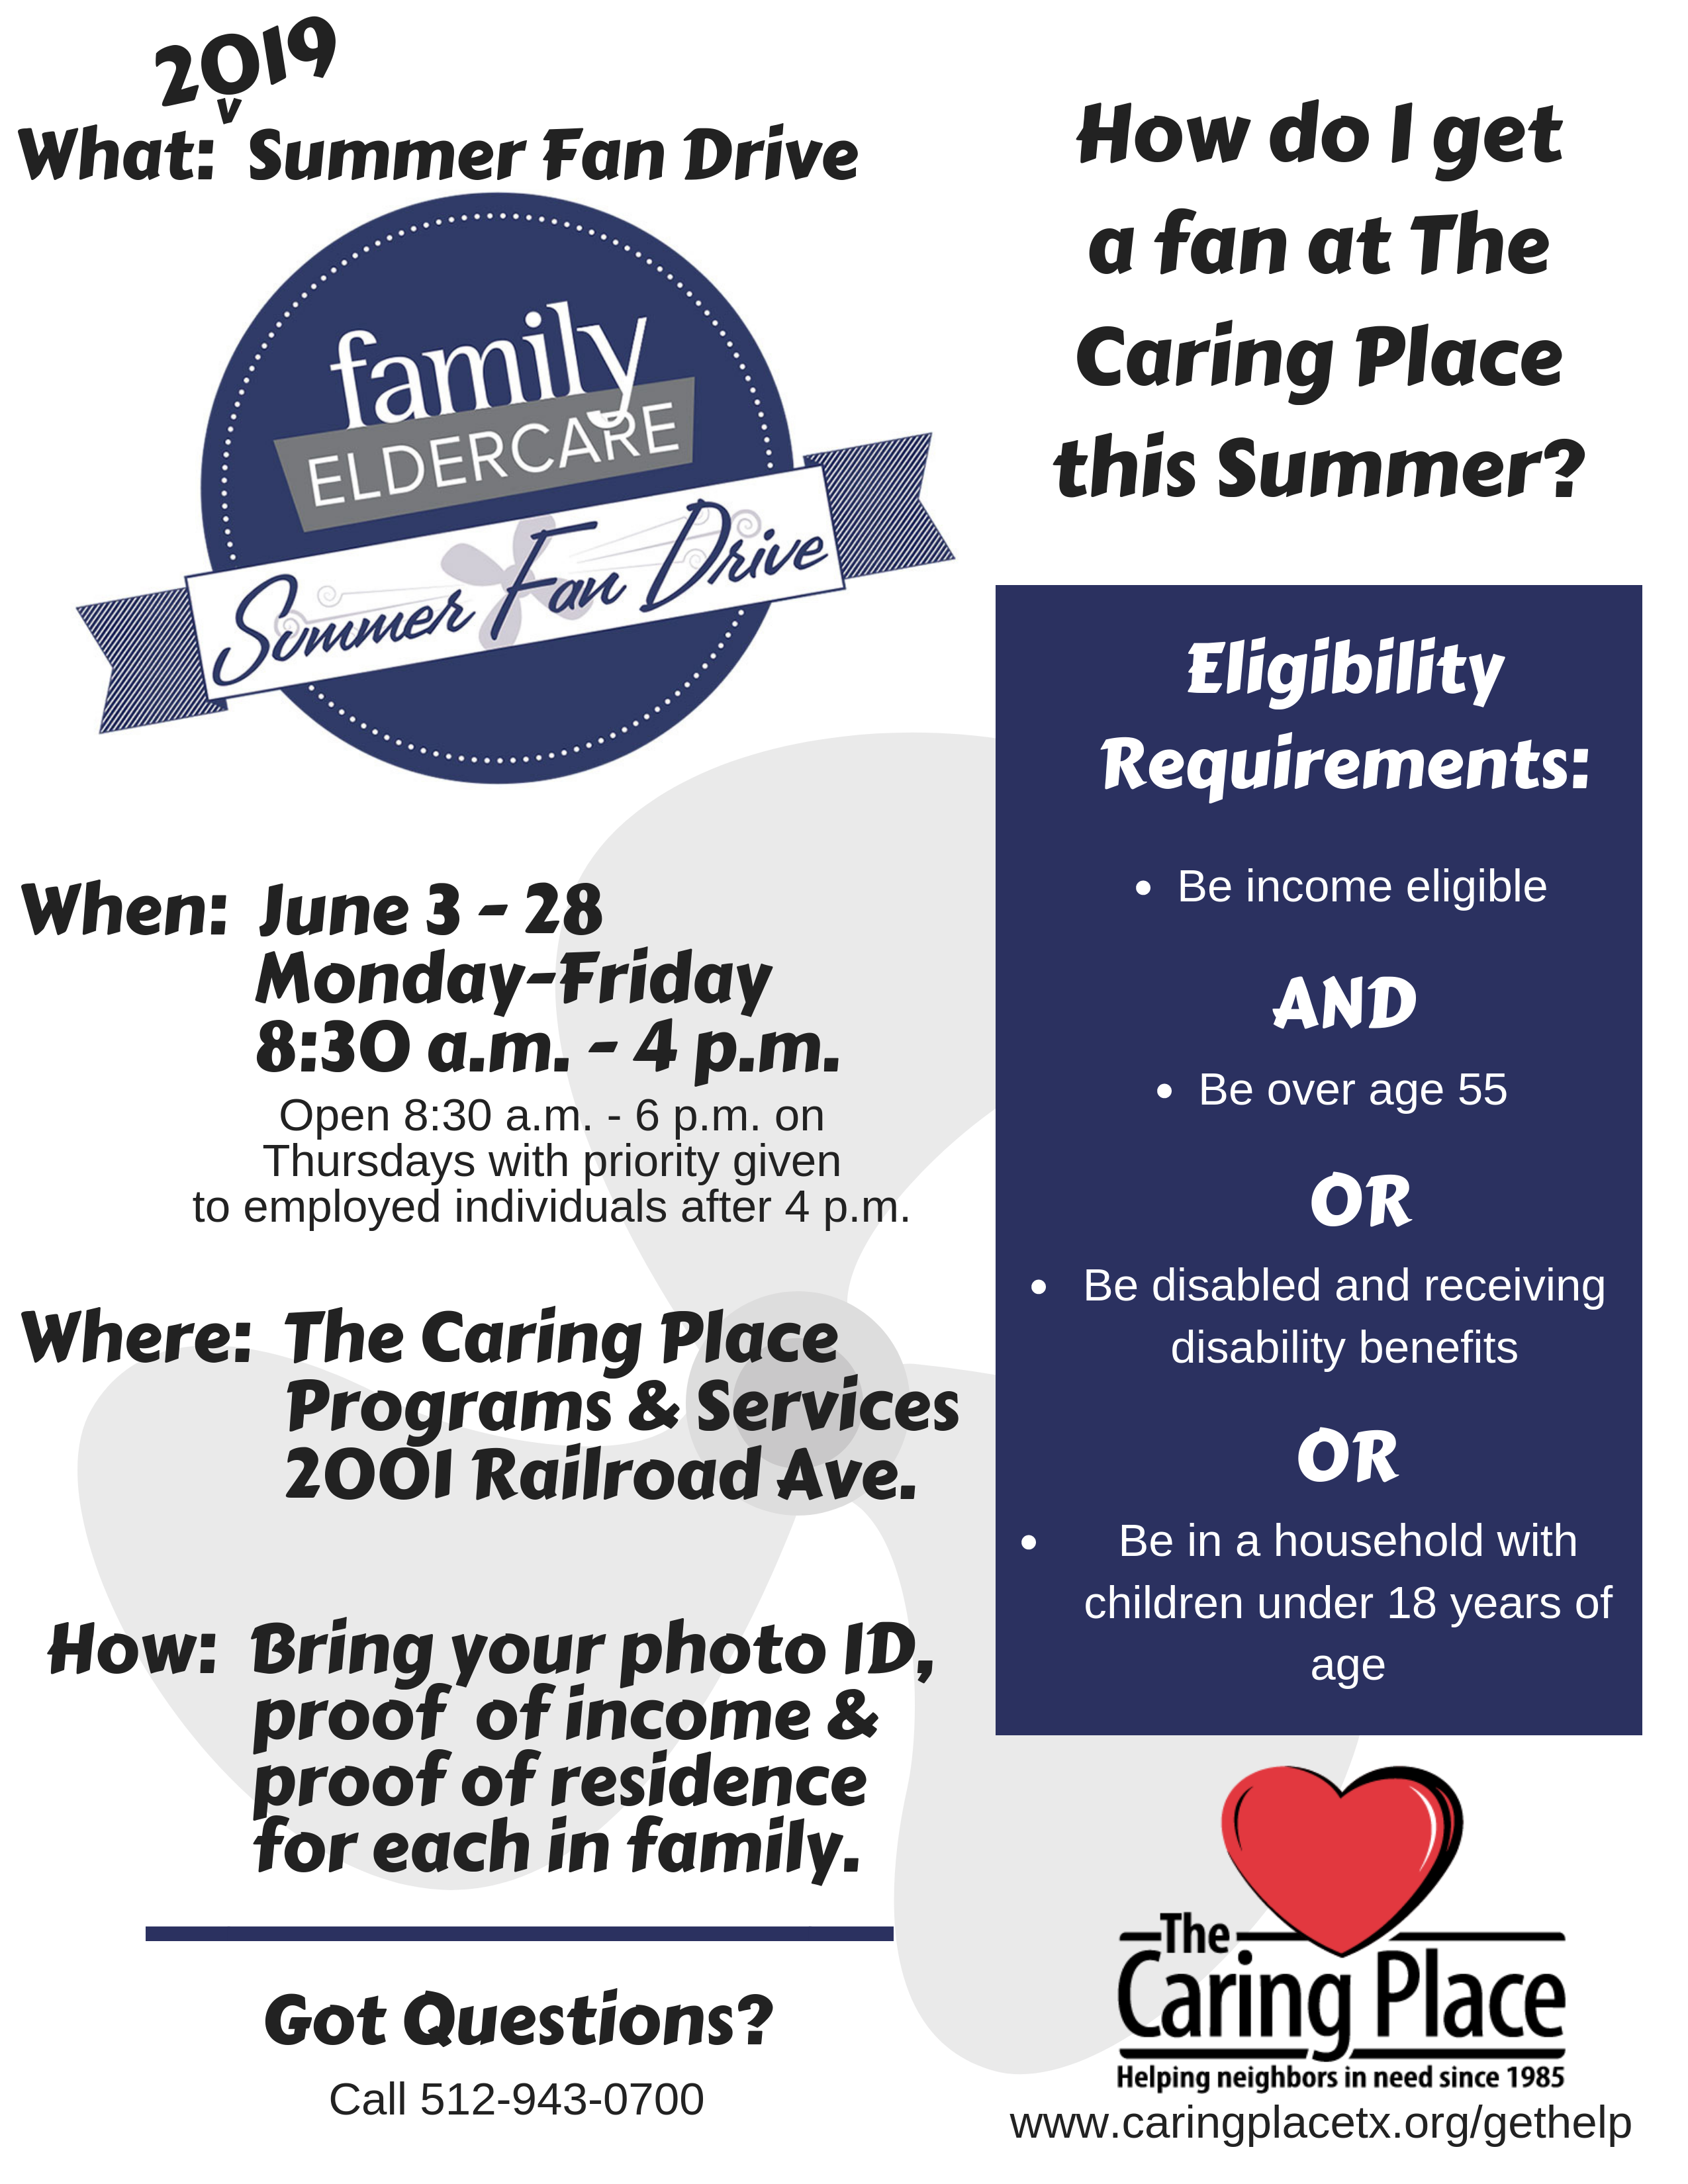 The Caring Place Helps Distribute Fans this Summer